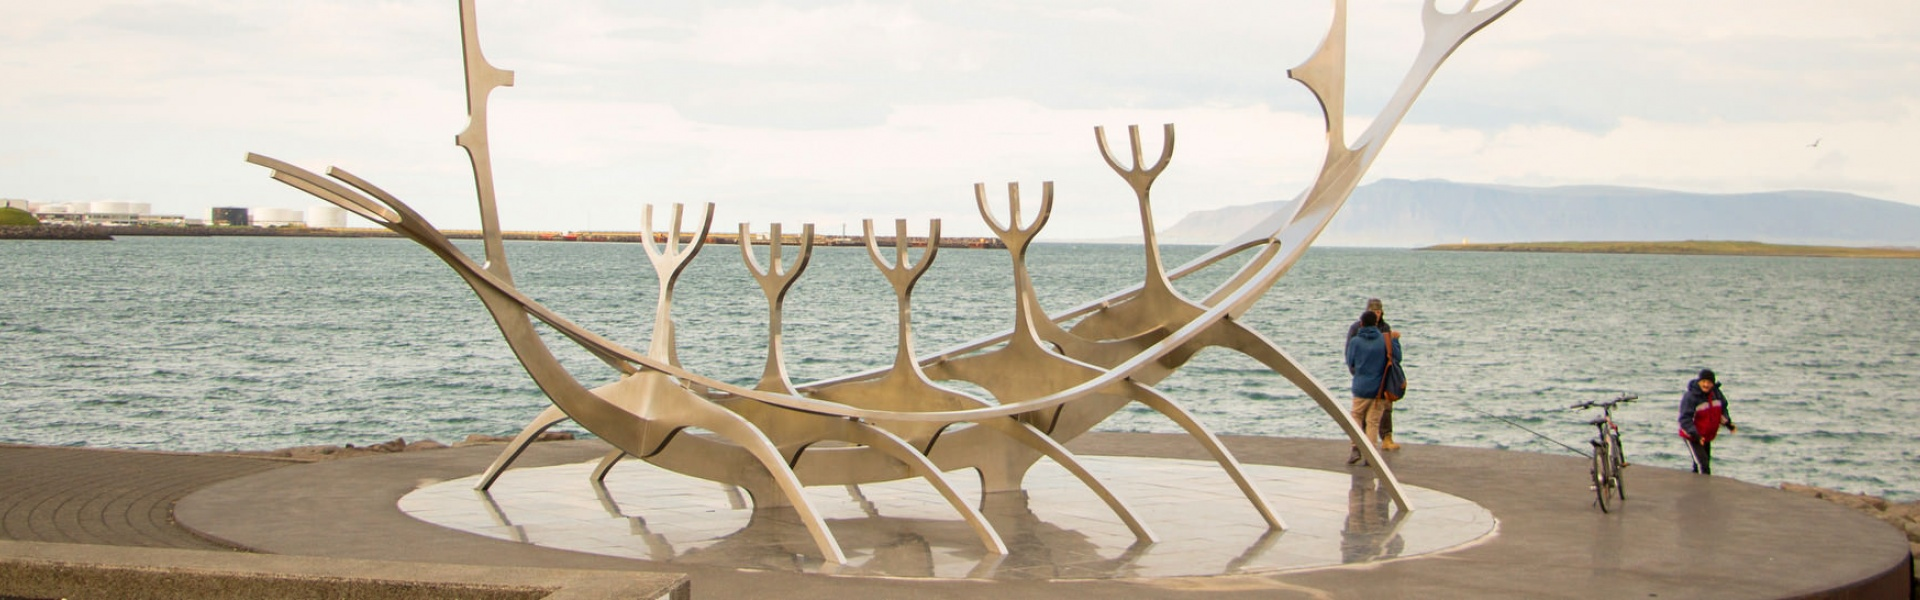 Explore the most famous Reykjavik landmarks, including the striking Sun Voyager sculpture